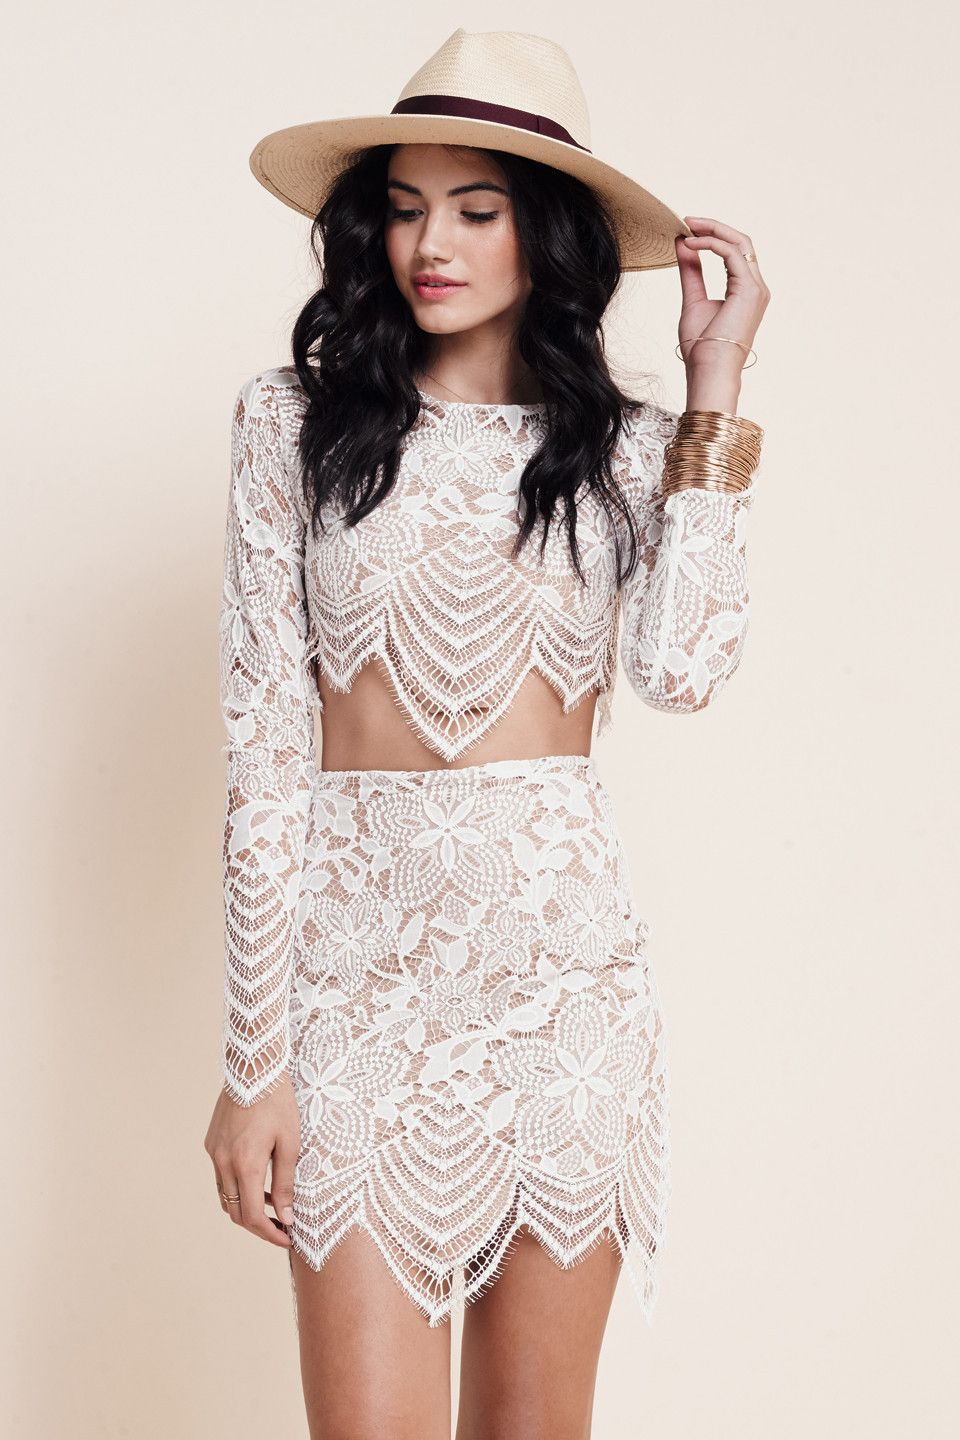 Women 2 pieces outfits for love and lemons 2 piece bodycon dress Sexy club party wear 2016 new White lace dress Casual-in Dresses from Women's Clothing & Accessories on Aliexpress.com | Alibaba Group